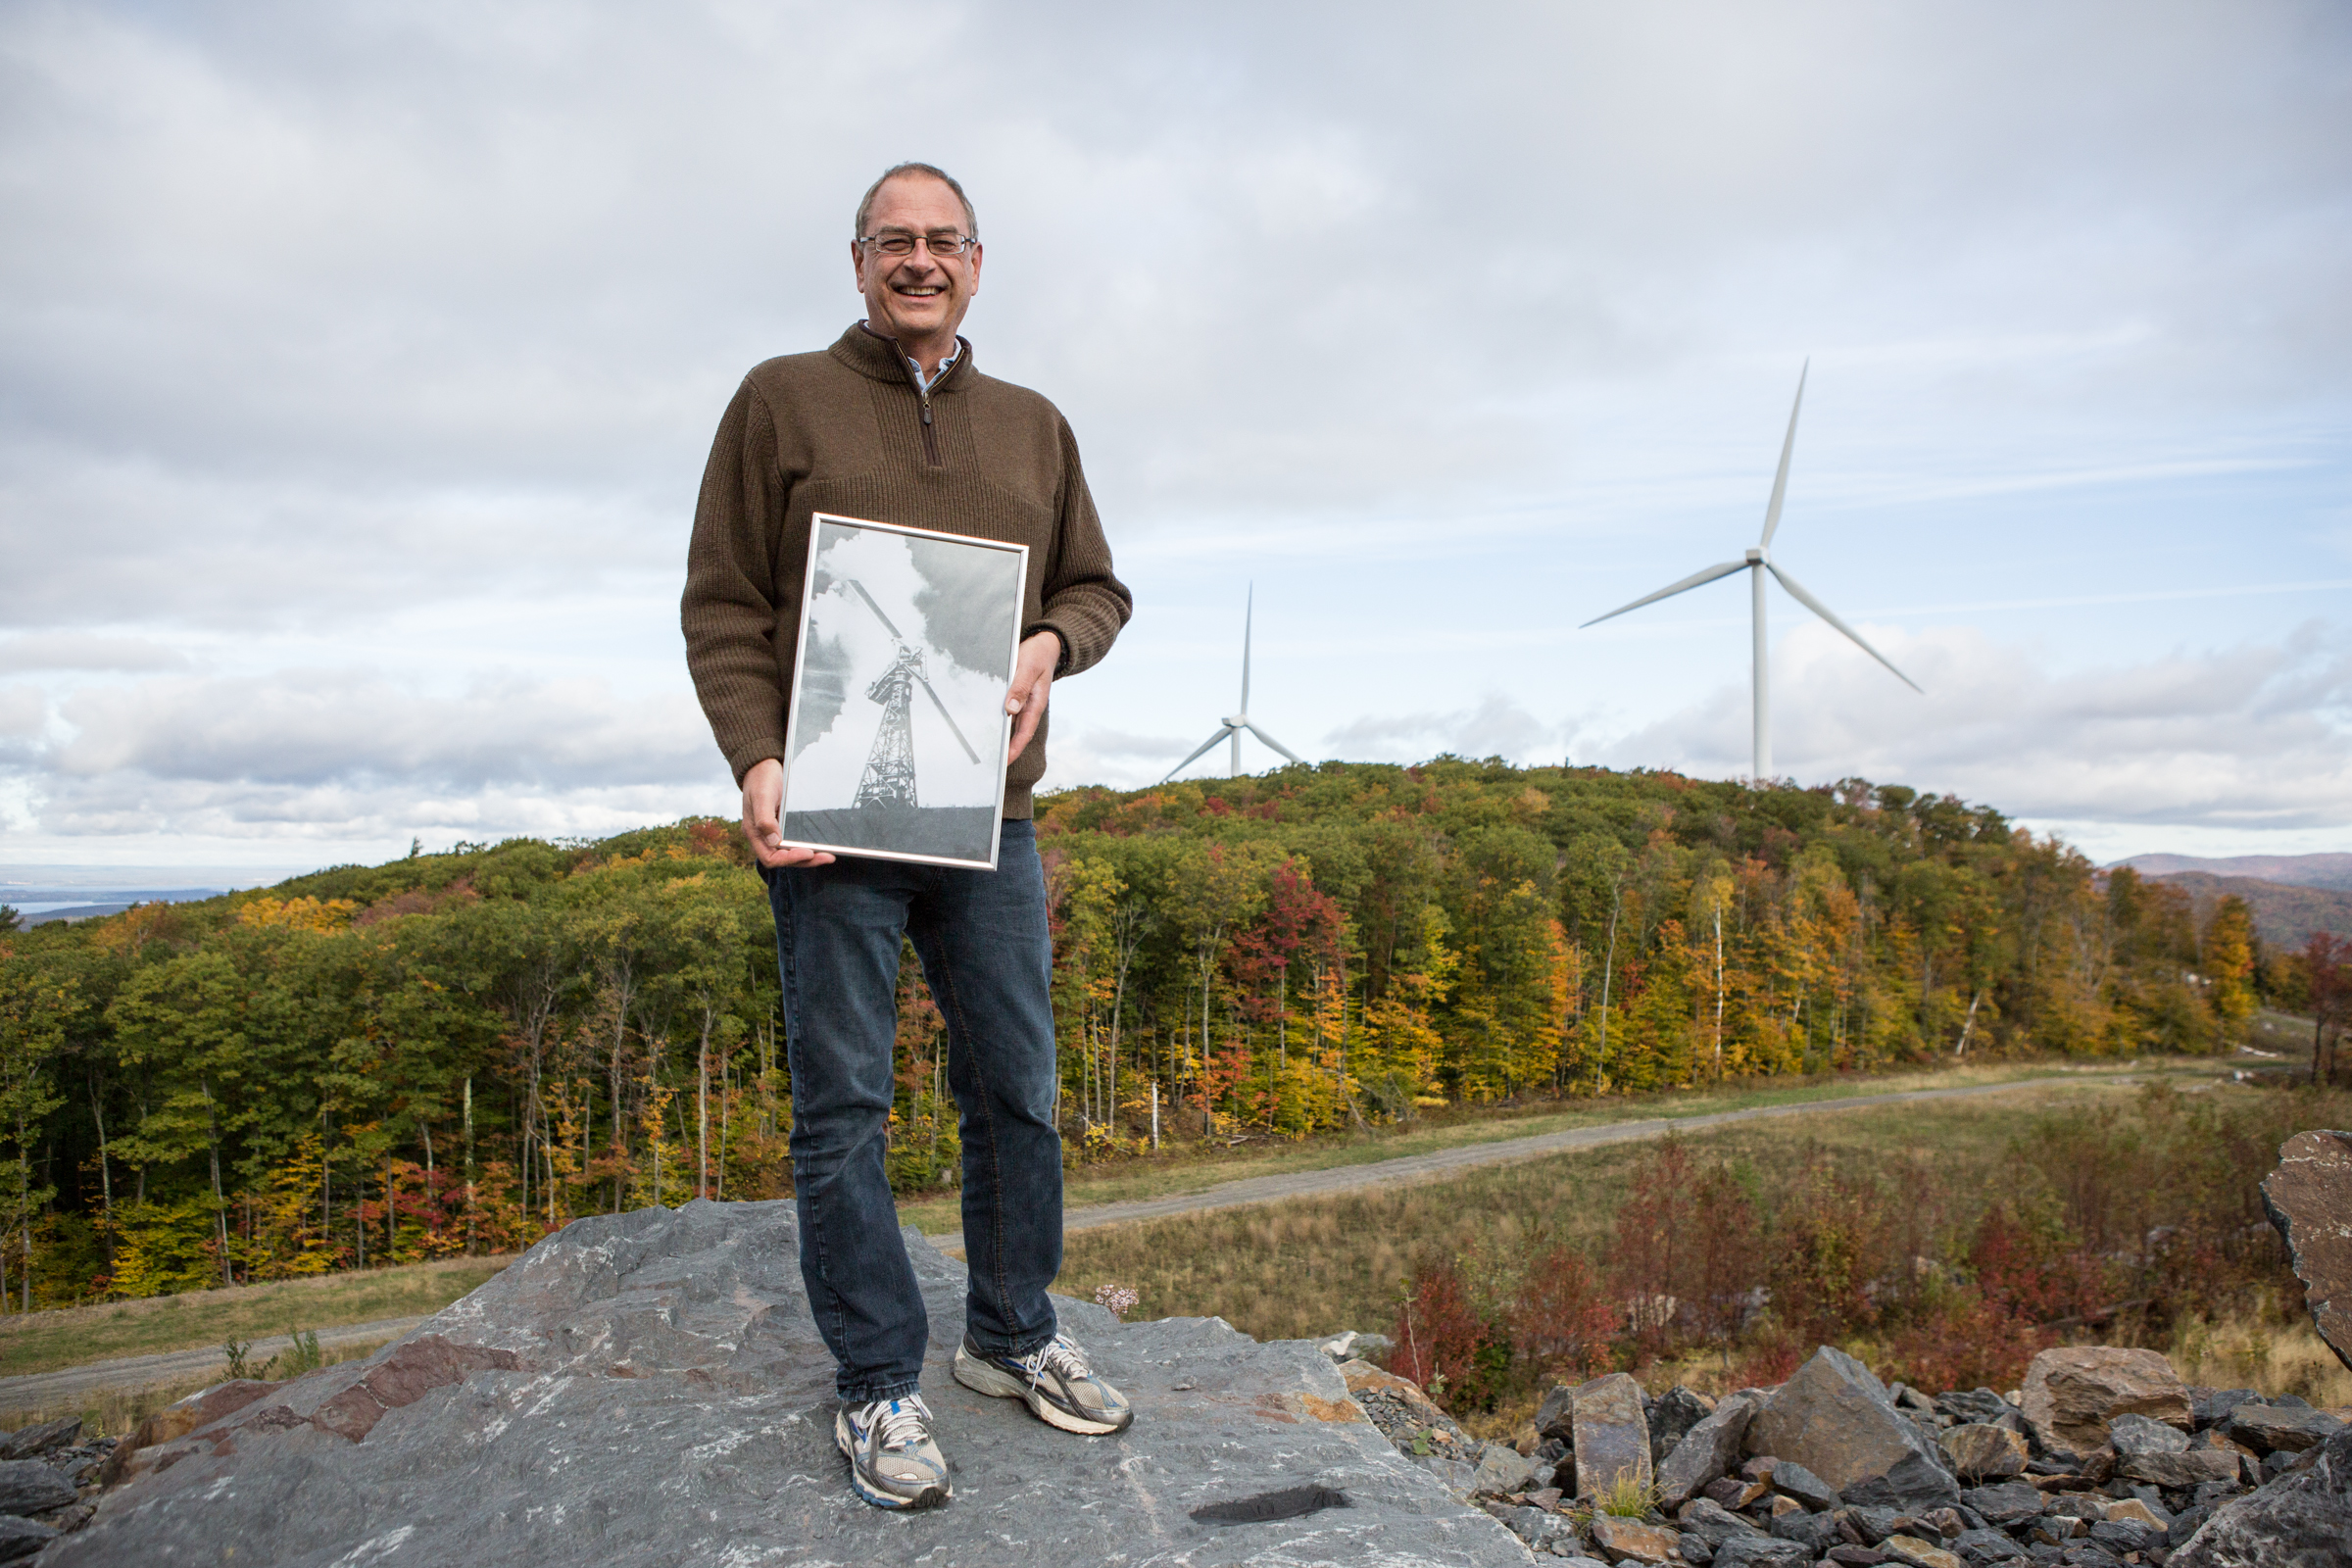 David Blittersdorf at the 10-megawatt Georgia Mountain Community Wind farm constructed in 2012 on the Milton-Georgia town border, holding an archival photo of the Smith- Putnam wind turbine–the world's first utility-connected wind turbine, which was built in 1941 atop Grandpa's Knob in Castleton, VT. Photo by Ned Castle.